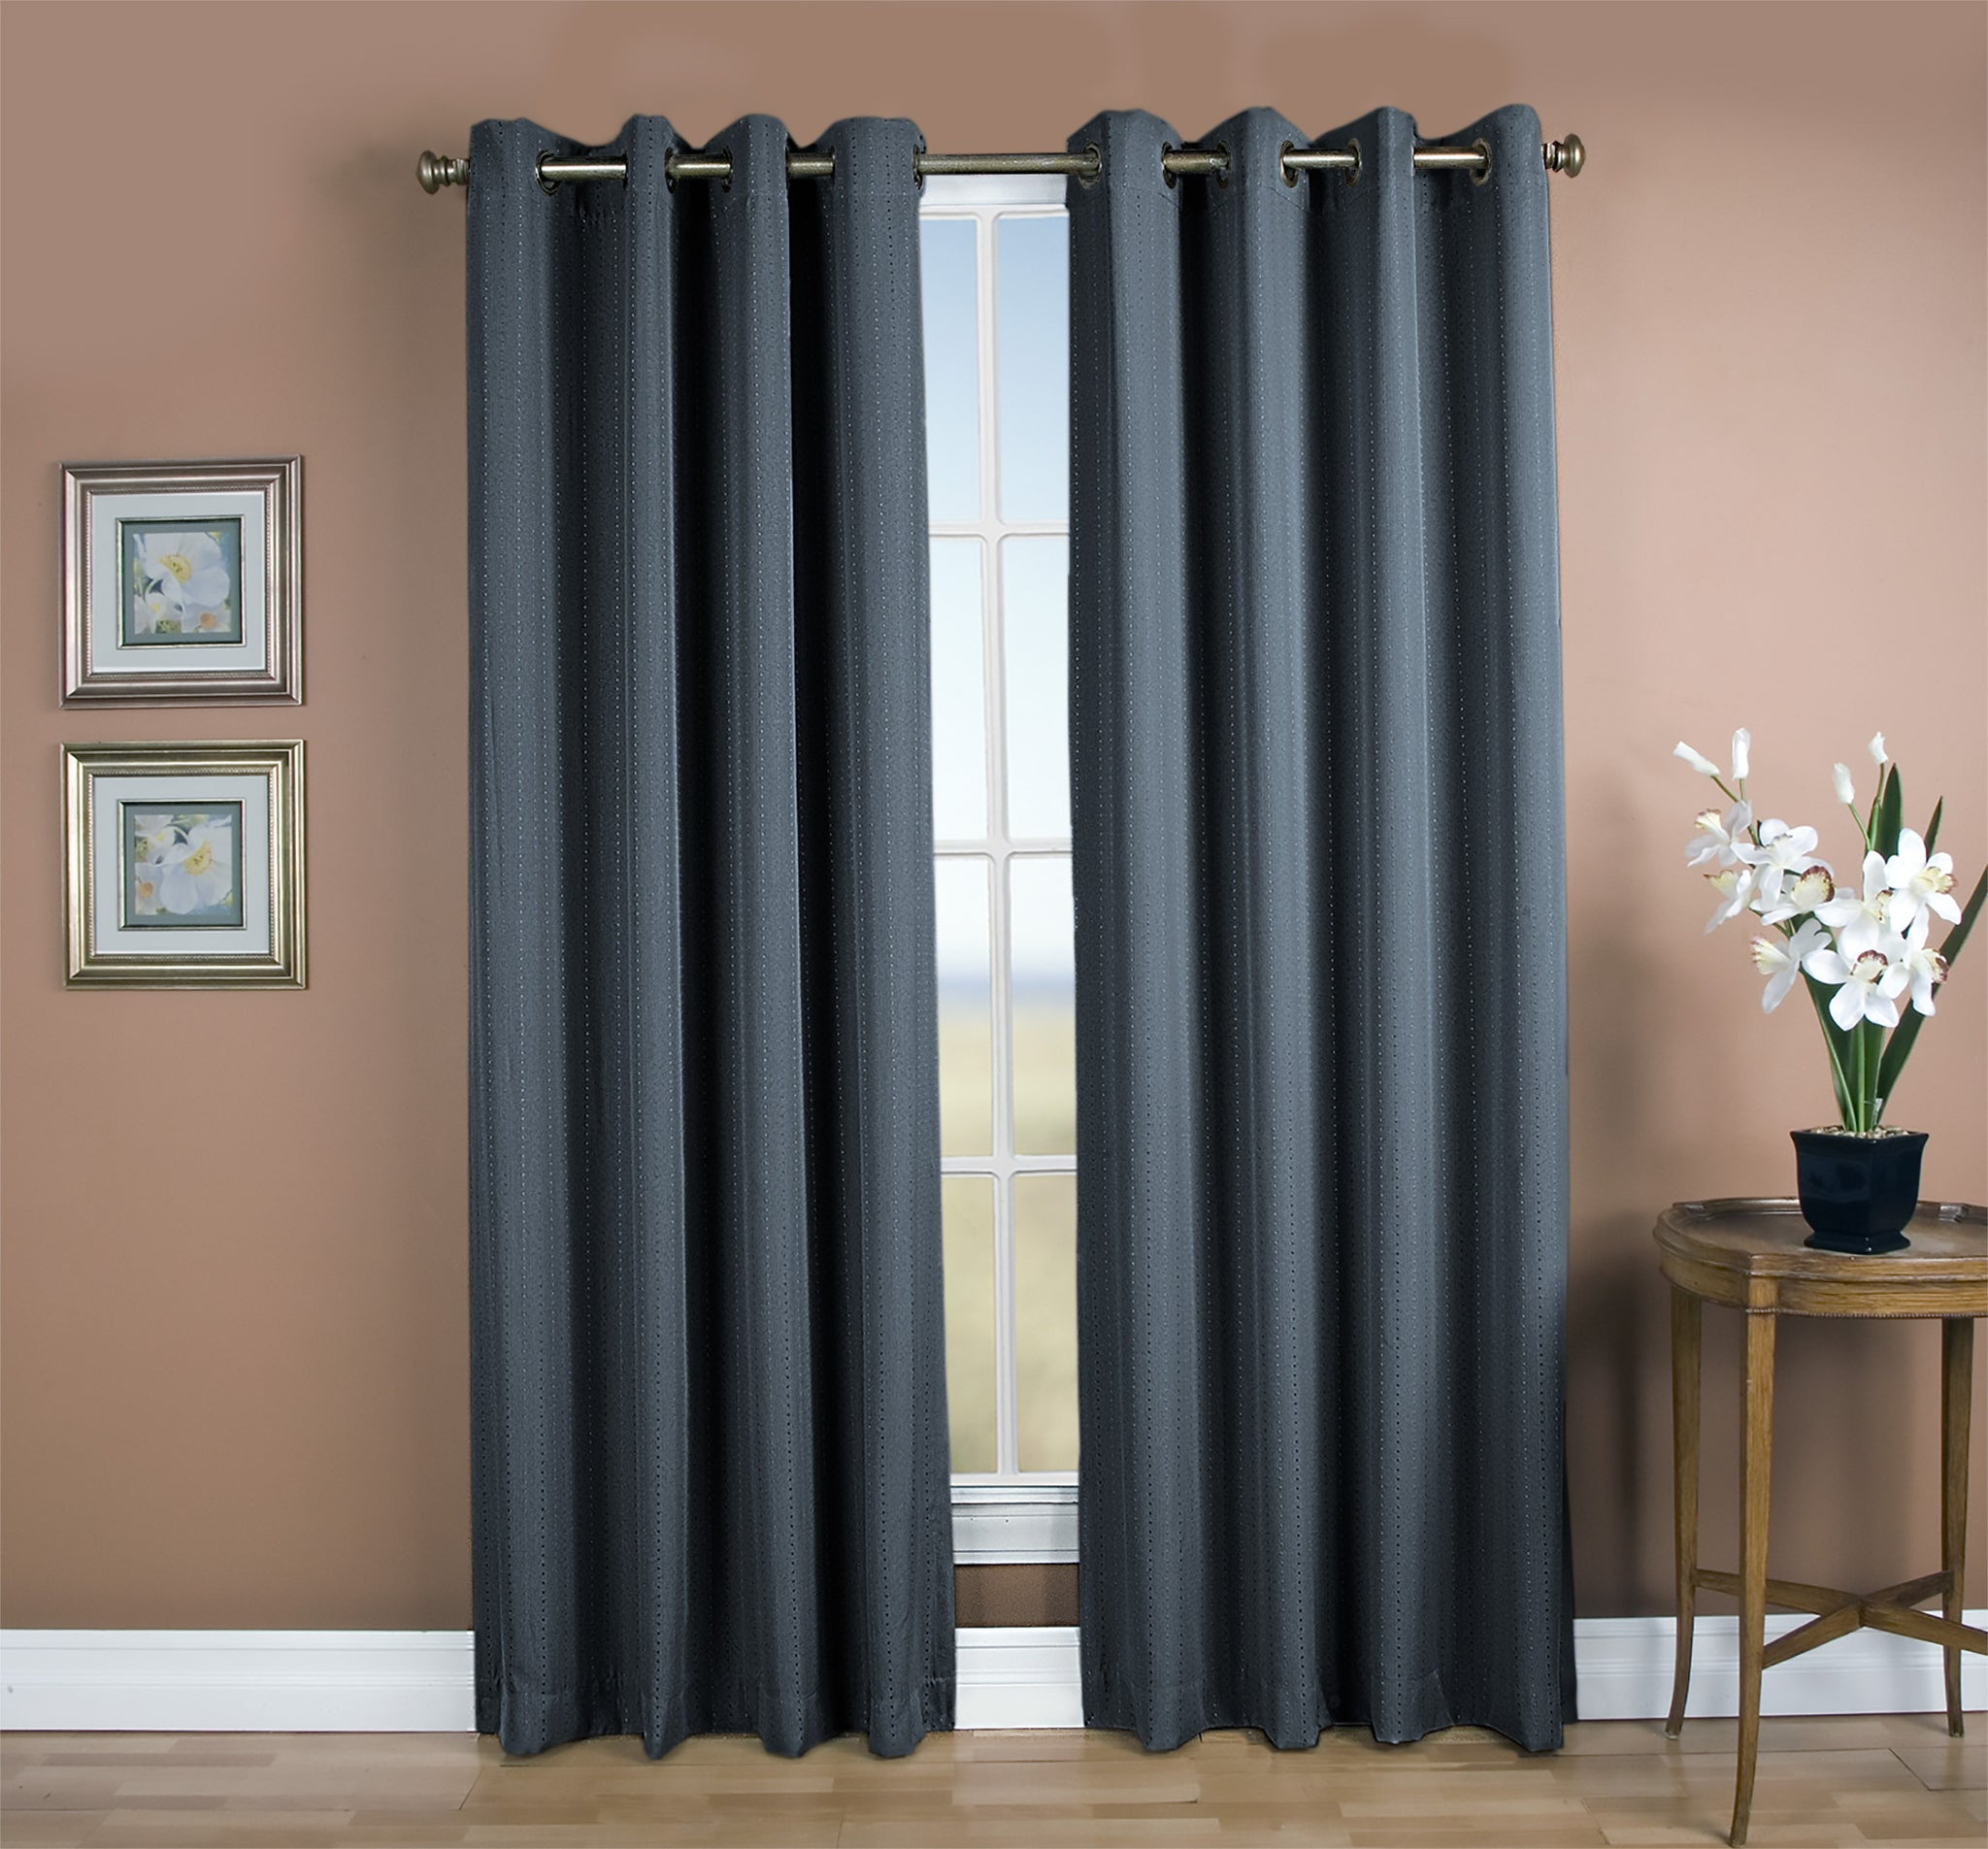 Grand Pointe Room Darkening Grommet Panel - 054x063 Deep Blue C28884- Marburn Curtains